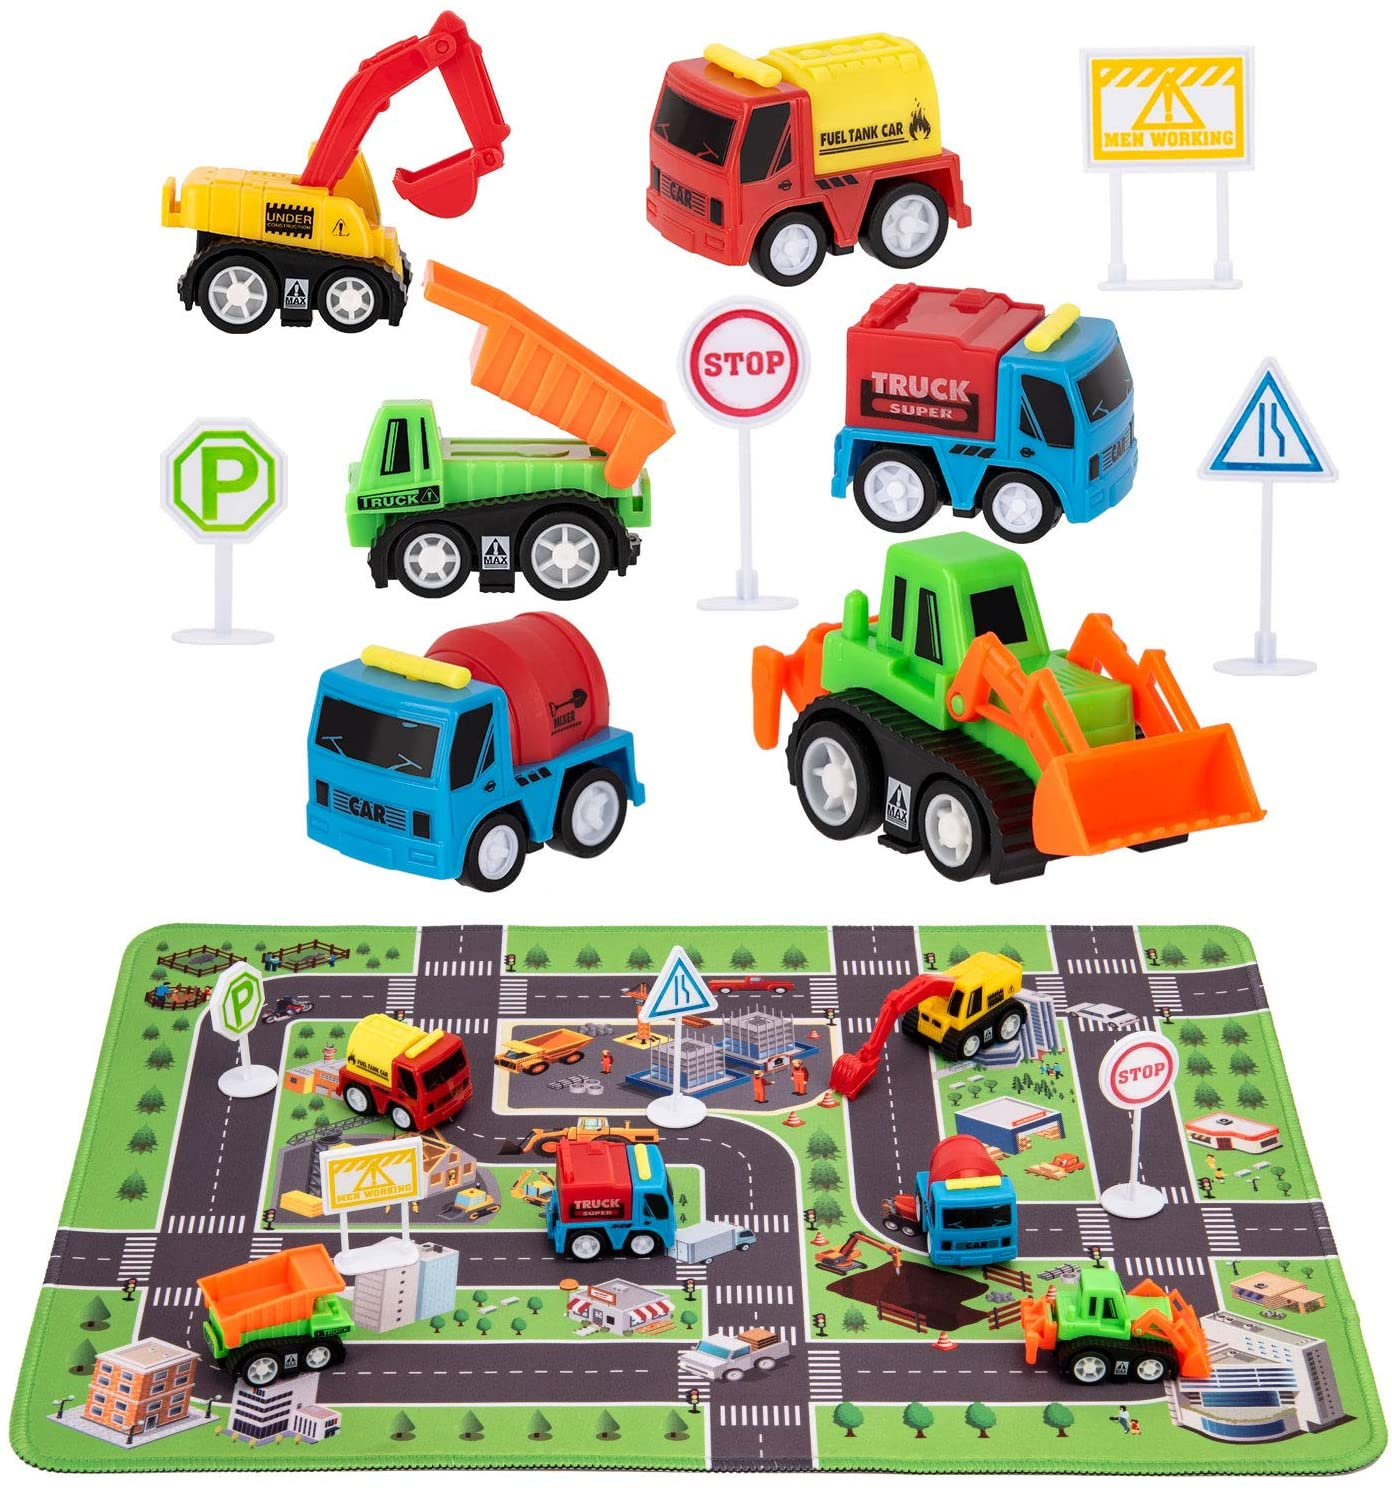 Kilpkonn Construction Toys with Play Mat, Engineering Vehicles Set Include 6 Construction Trucks, 4 Road Signs, 14